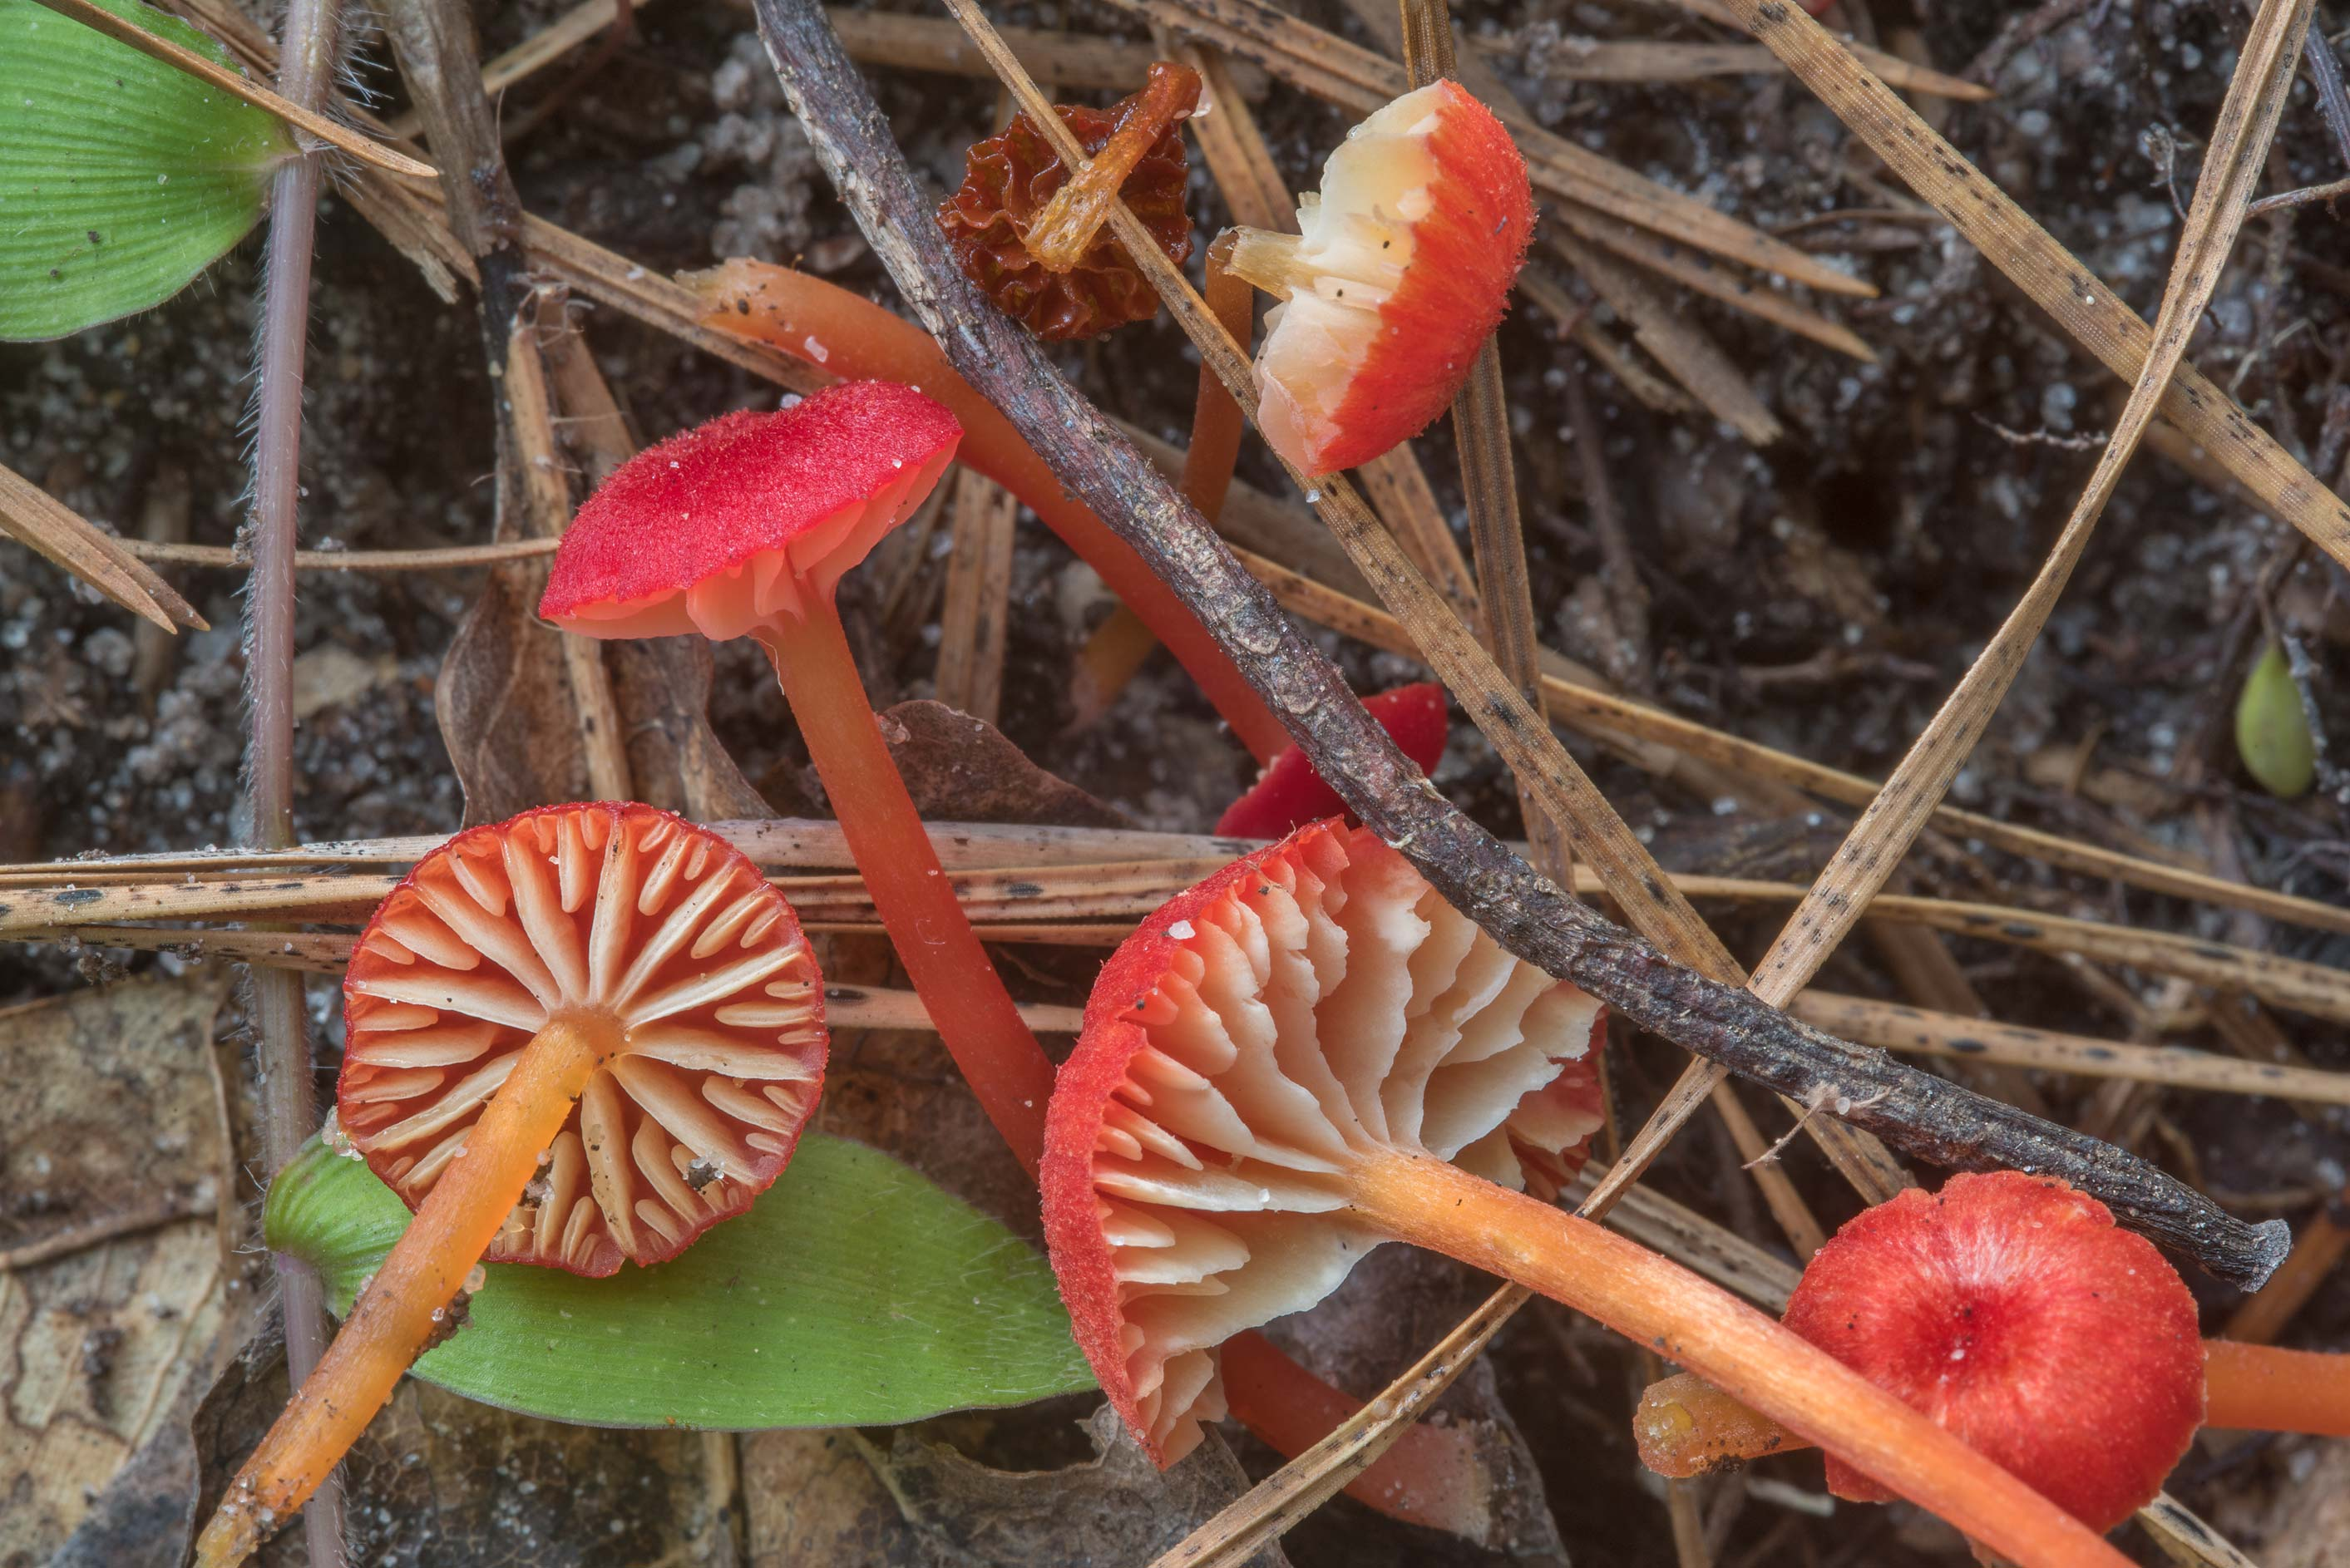 Small bright red waxcap mushrooms Hygrocybe...National Forest near Huntsville, Texas